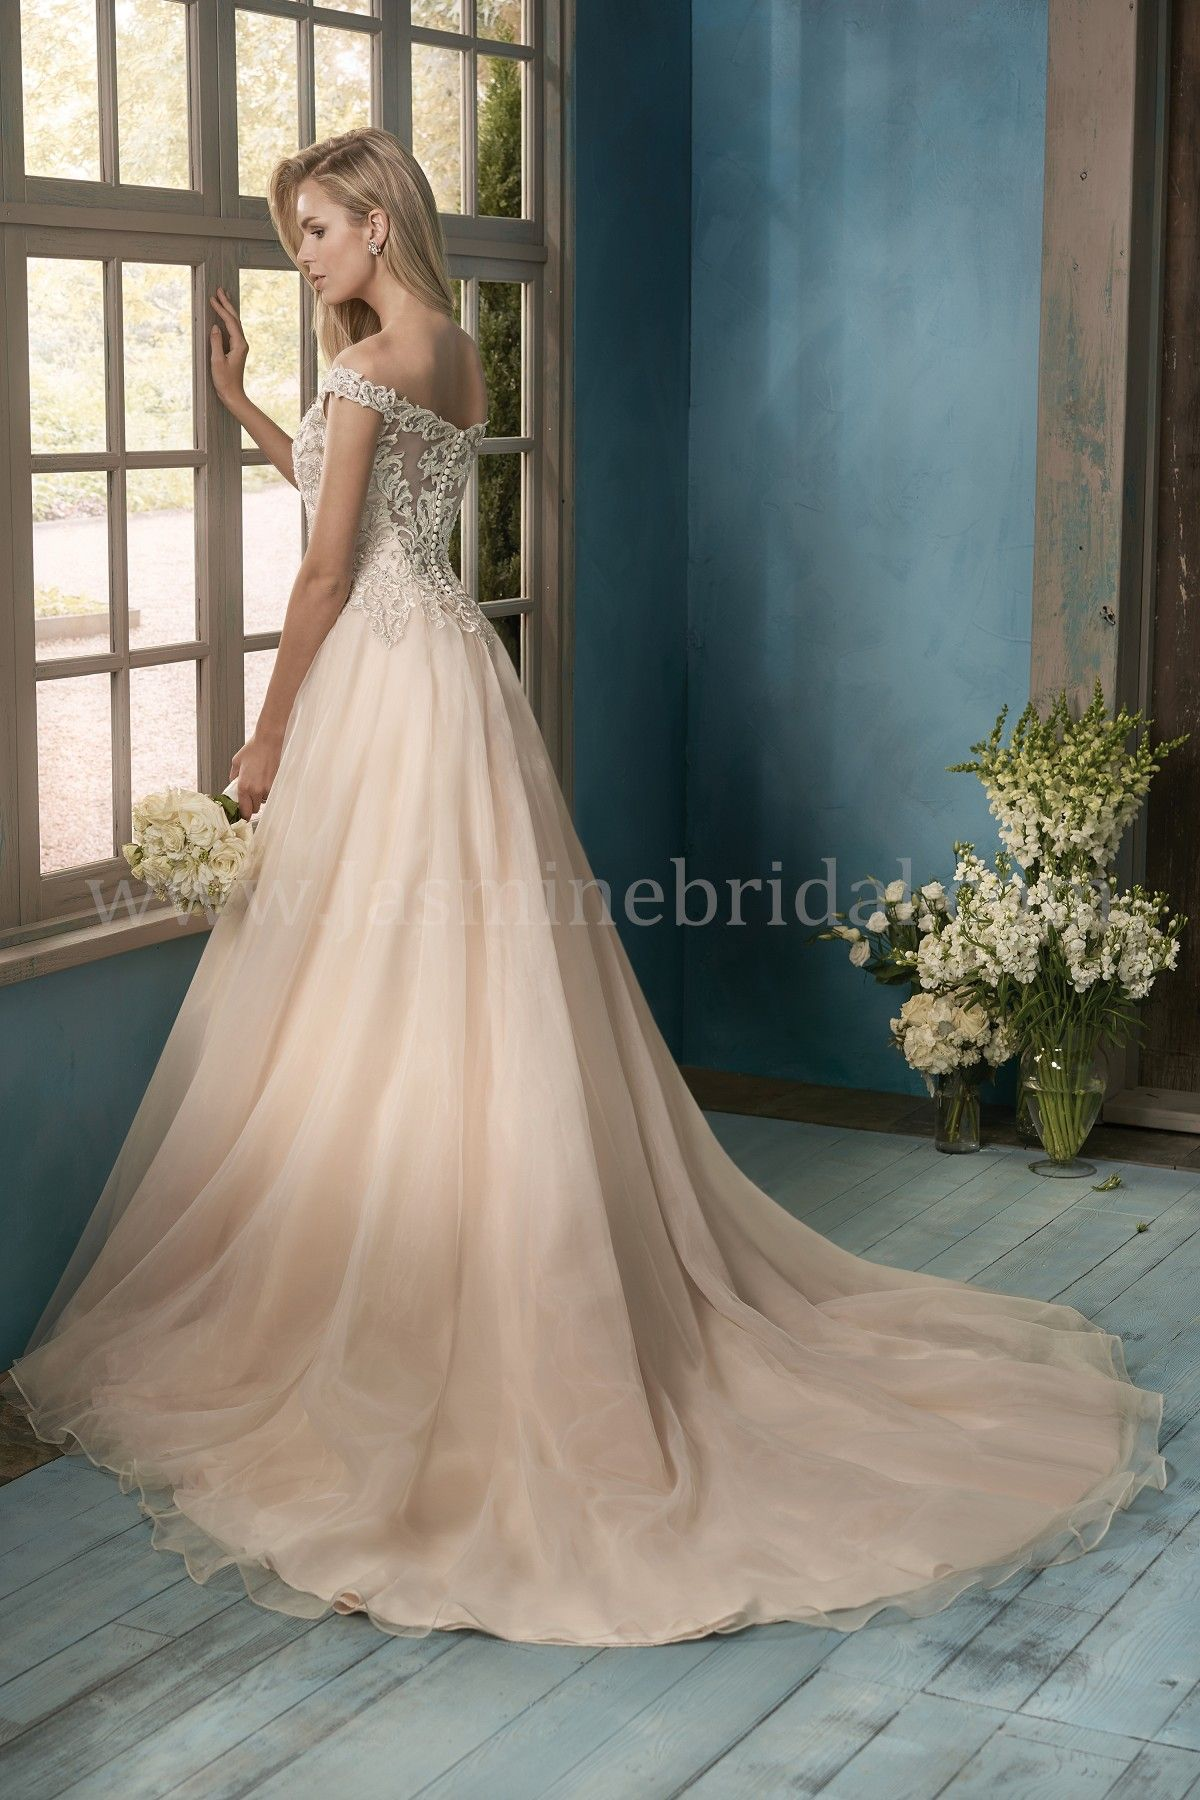 jasmine bridal jasmine collection bridal gown wedding gown